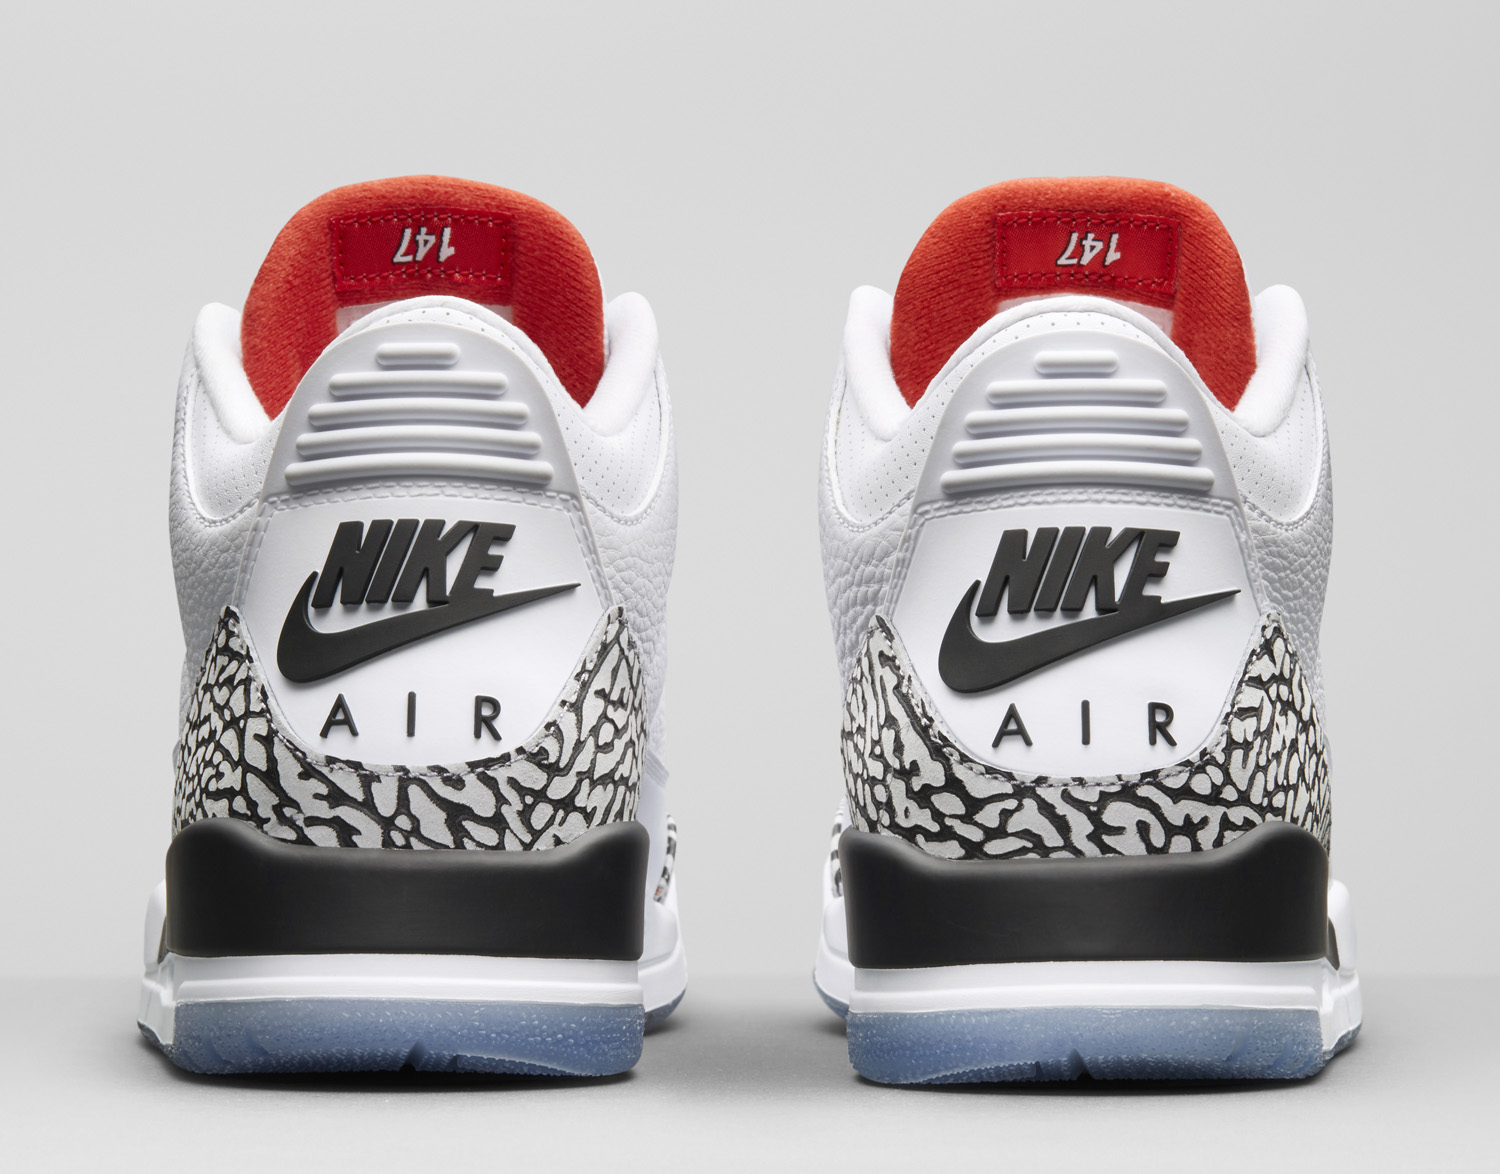 Salón He reconocido Investigación  The Air Jordan 3 'White Cement' NRG Celebrates MJ's Jump From the Free  Throw Line - WearTesters